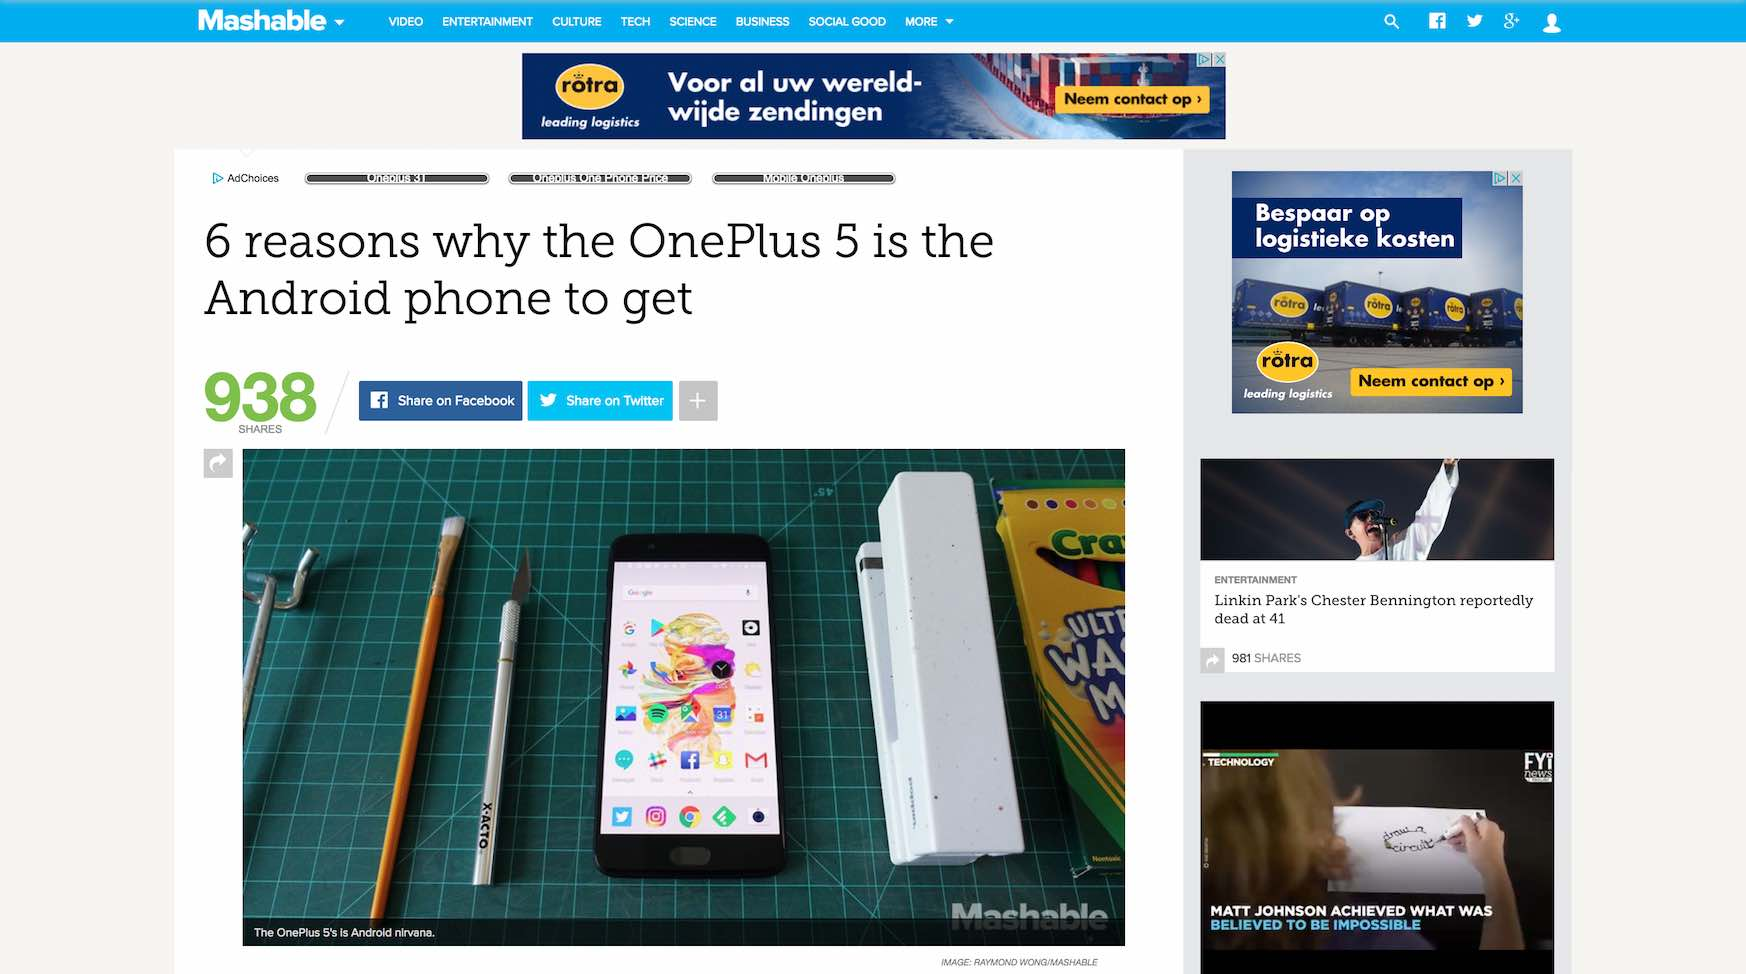 Mashable OnePlus 5 Review